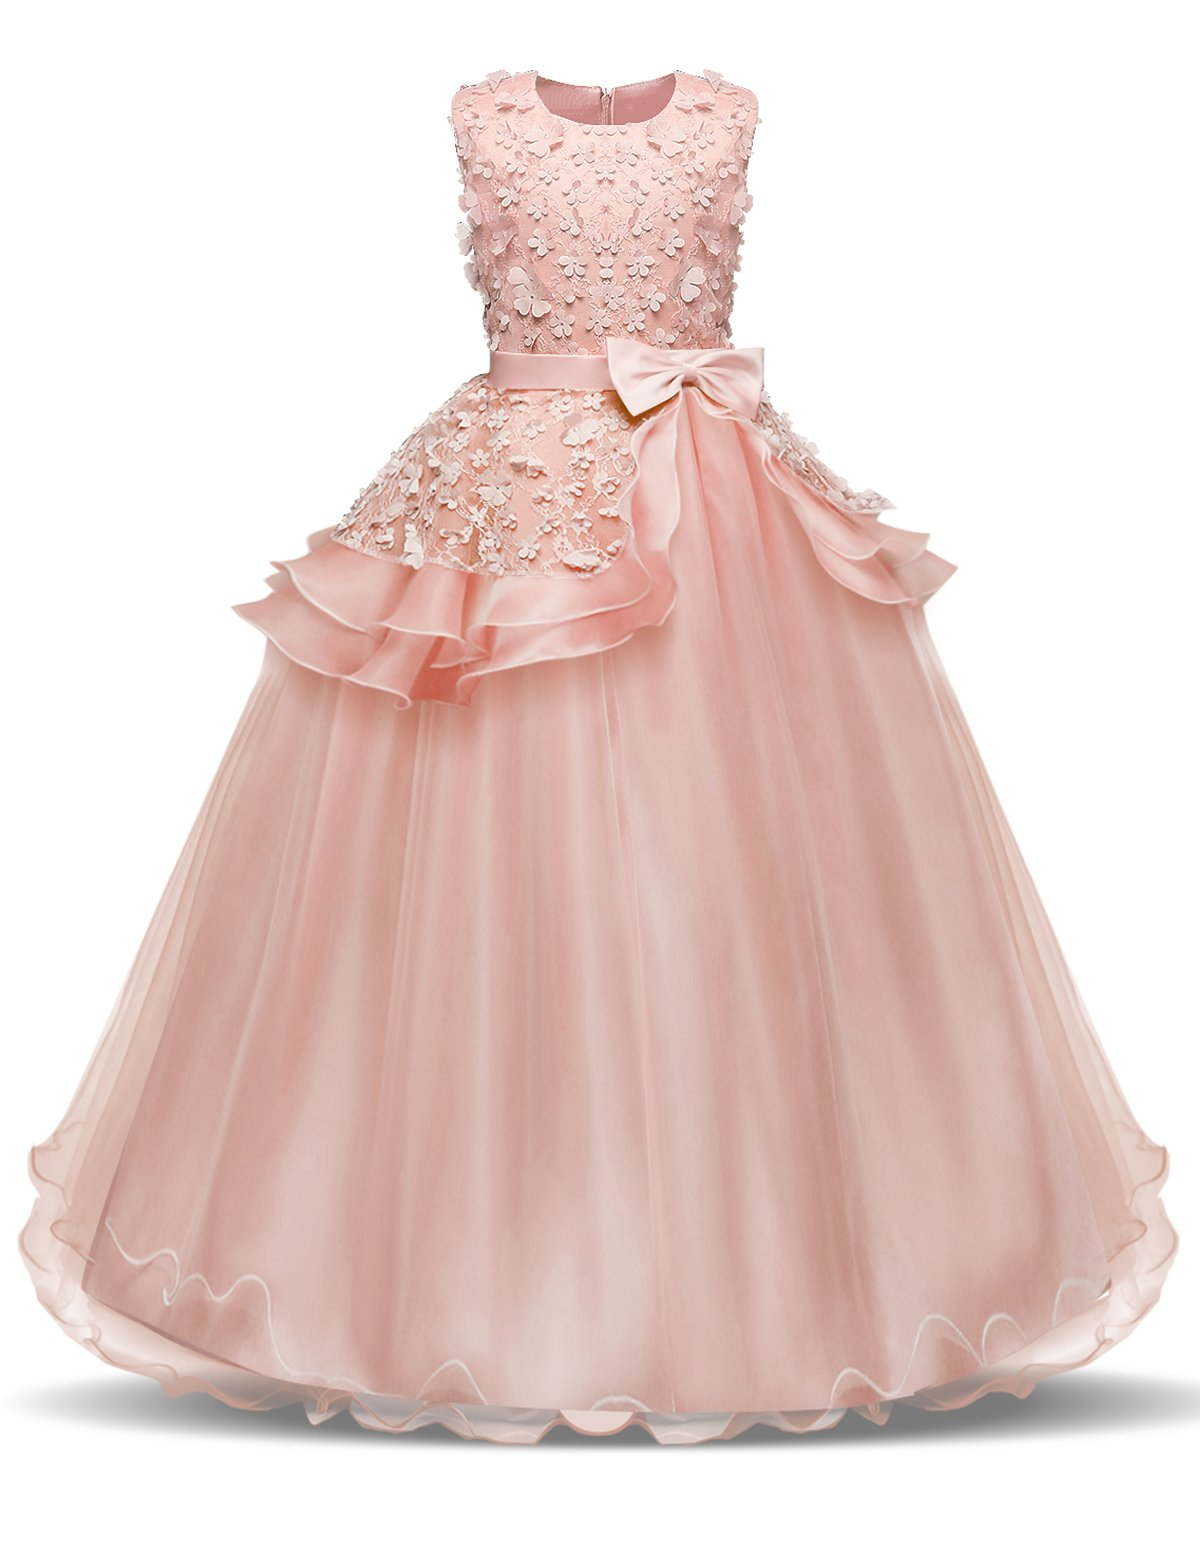 NNJXD Girl Sleeveless Embroidery Princess Pageant Dresses Kids Prom Ball Gown Size (130) 6-7 Years Pink